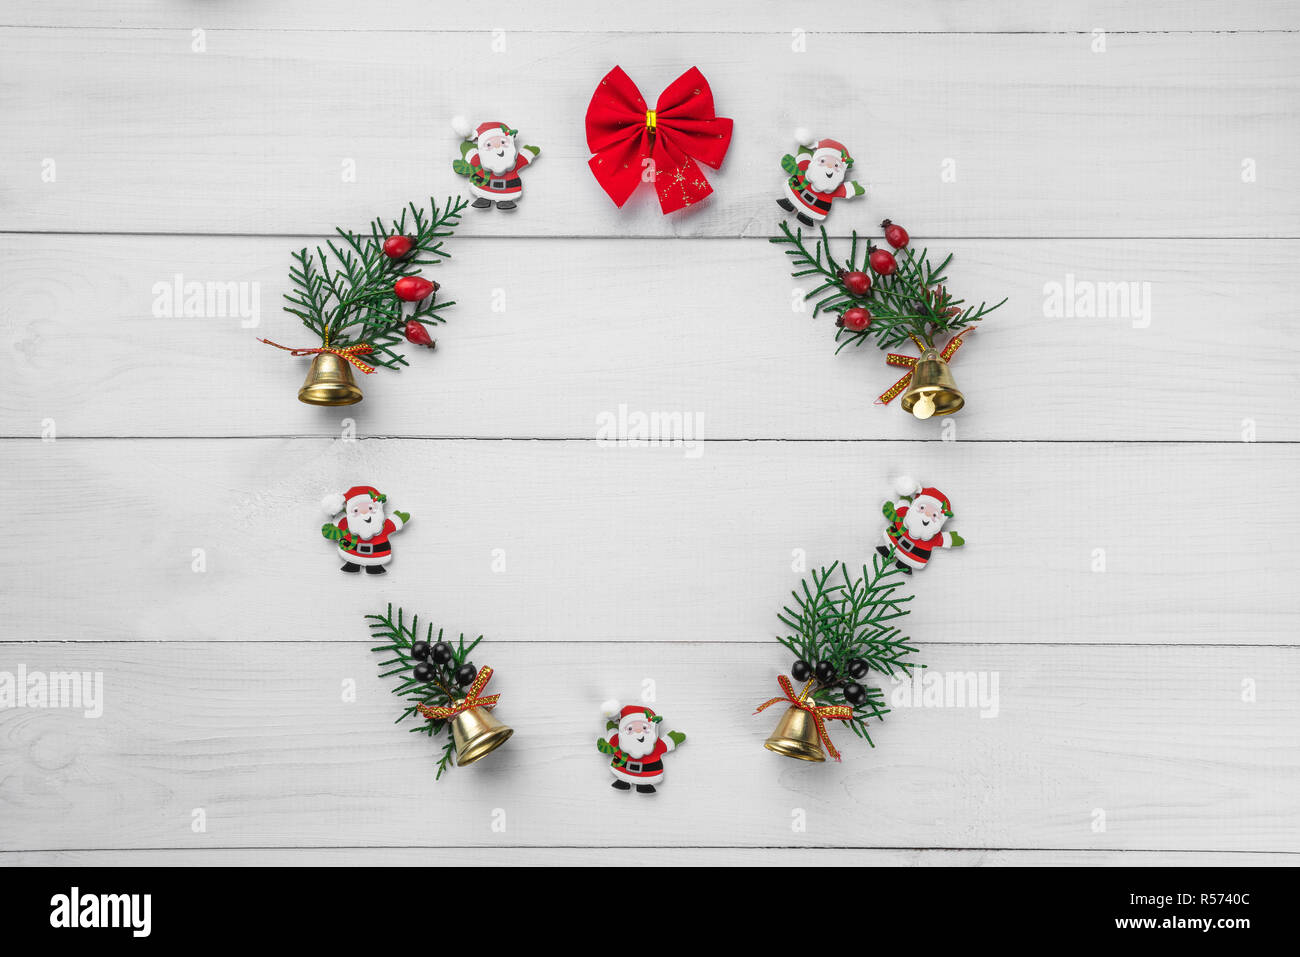 Christmas Winter Wreath Round Frame Christmas Tree Decorations